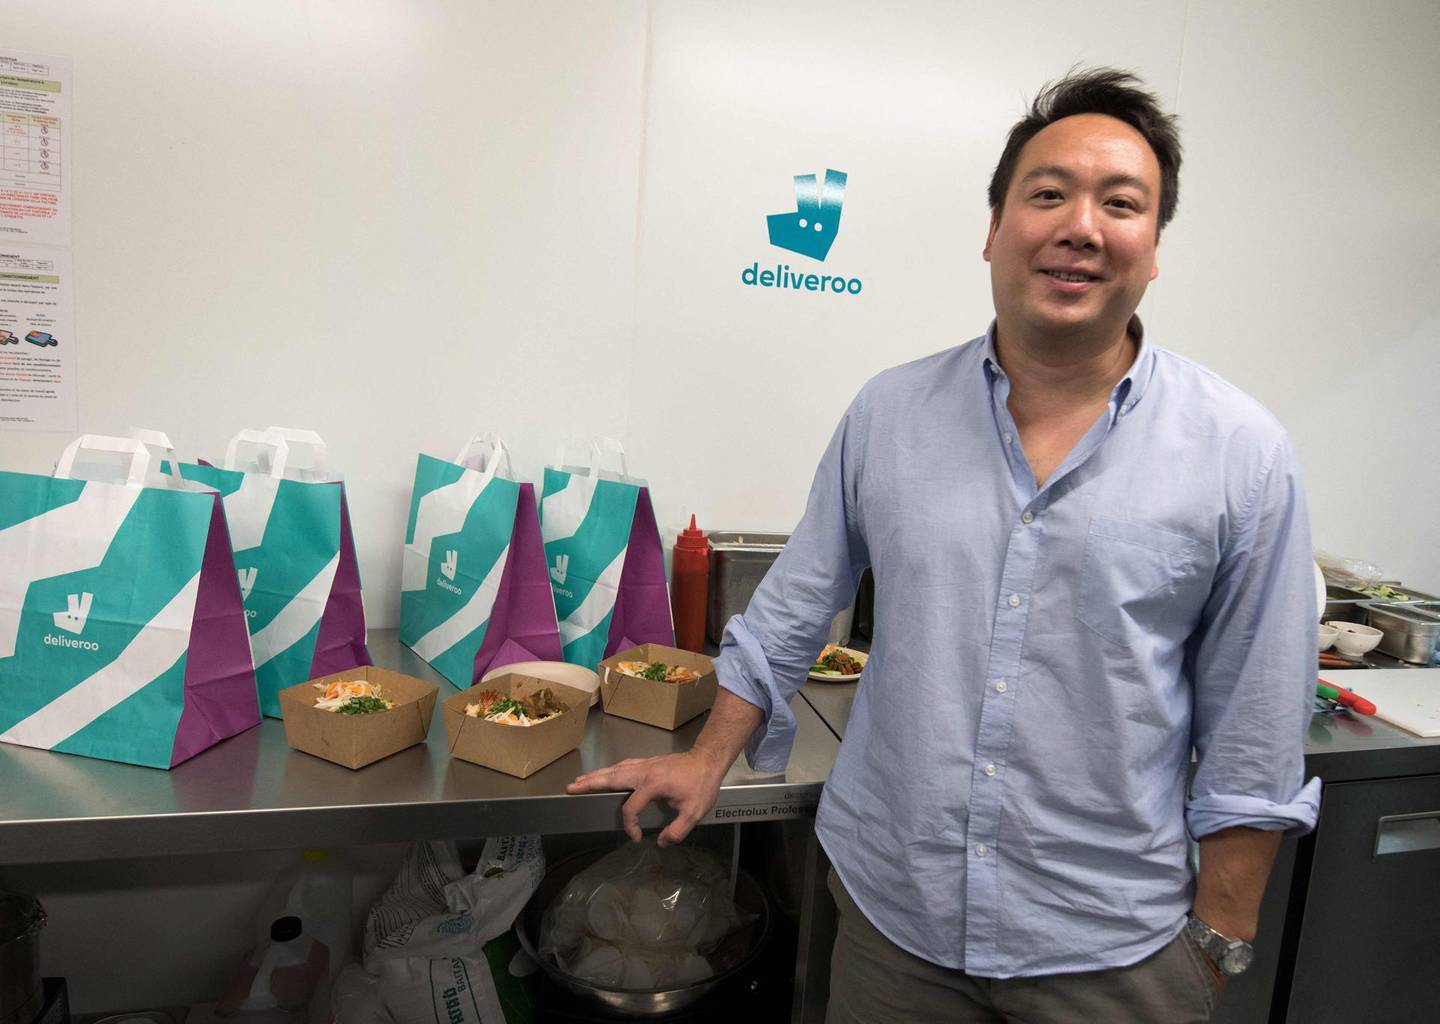 (FILES) In this file photo taken on July 03, 2018 co-founder and CEO of Deliveroo, Will Shu, poses during the launch of first kitchen Deliveroo Editions in Saint-Ouen, outside Paris. Takeaway meals app Deliveroo on March 4, 2021 said it had chosen London for its stock market listing, a major boost for the capital's financial sector which has been roiled by Brexit.    / AFP / GERARD JULIEN